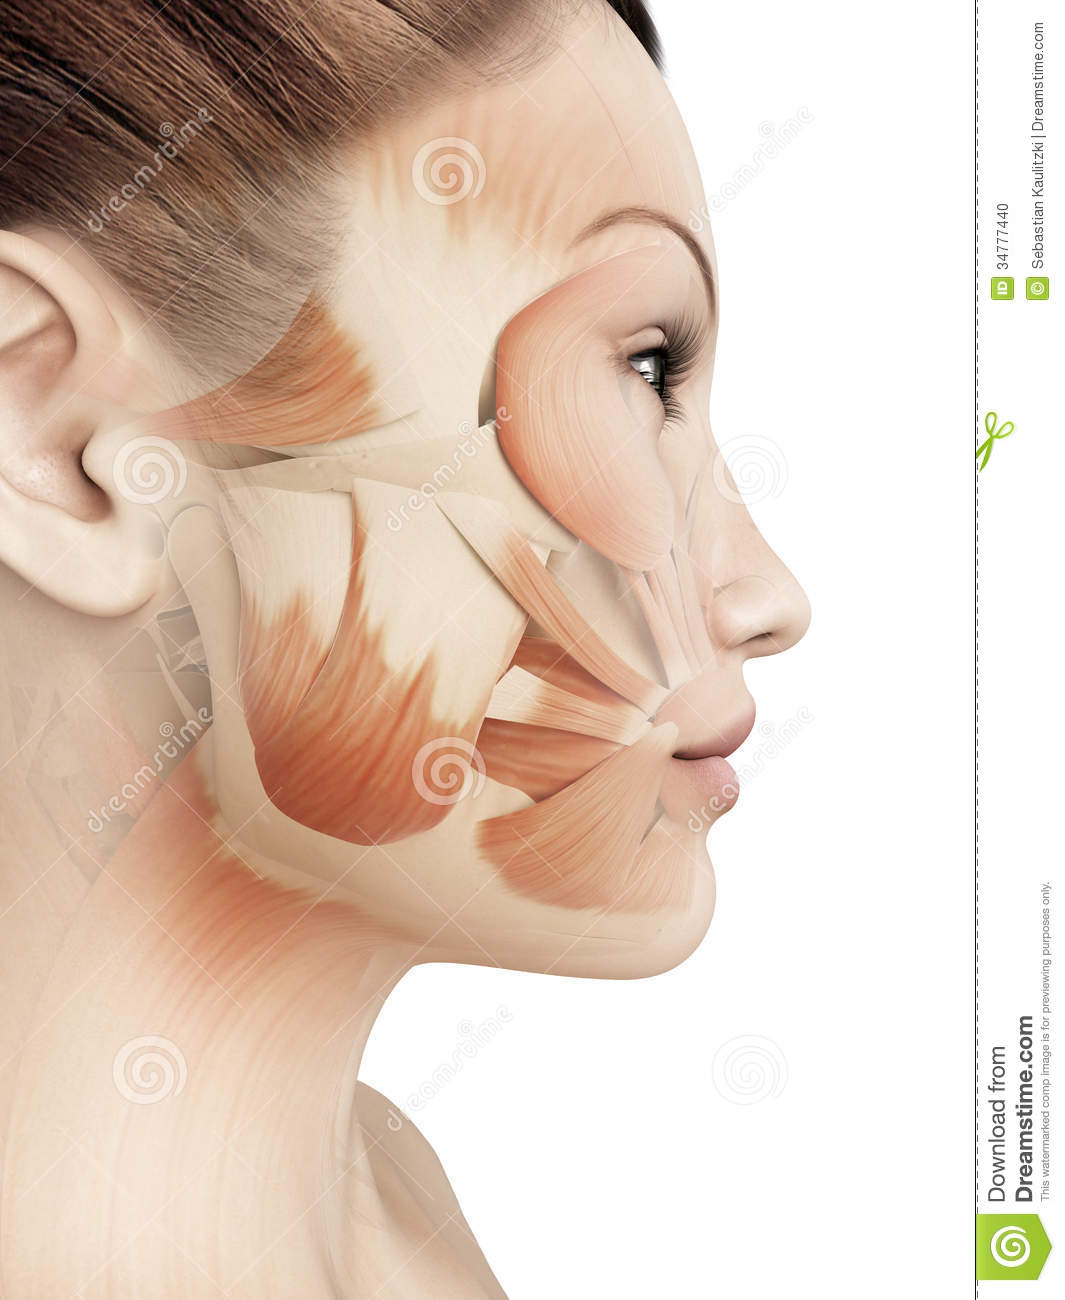 an introduction to the analysis of facial muscles